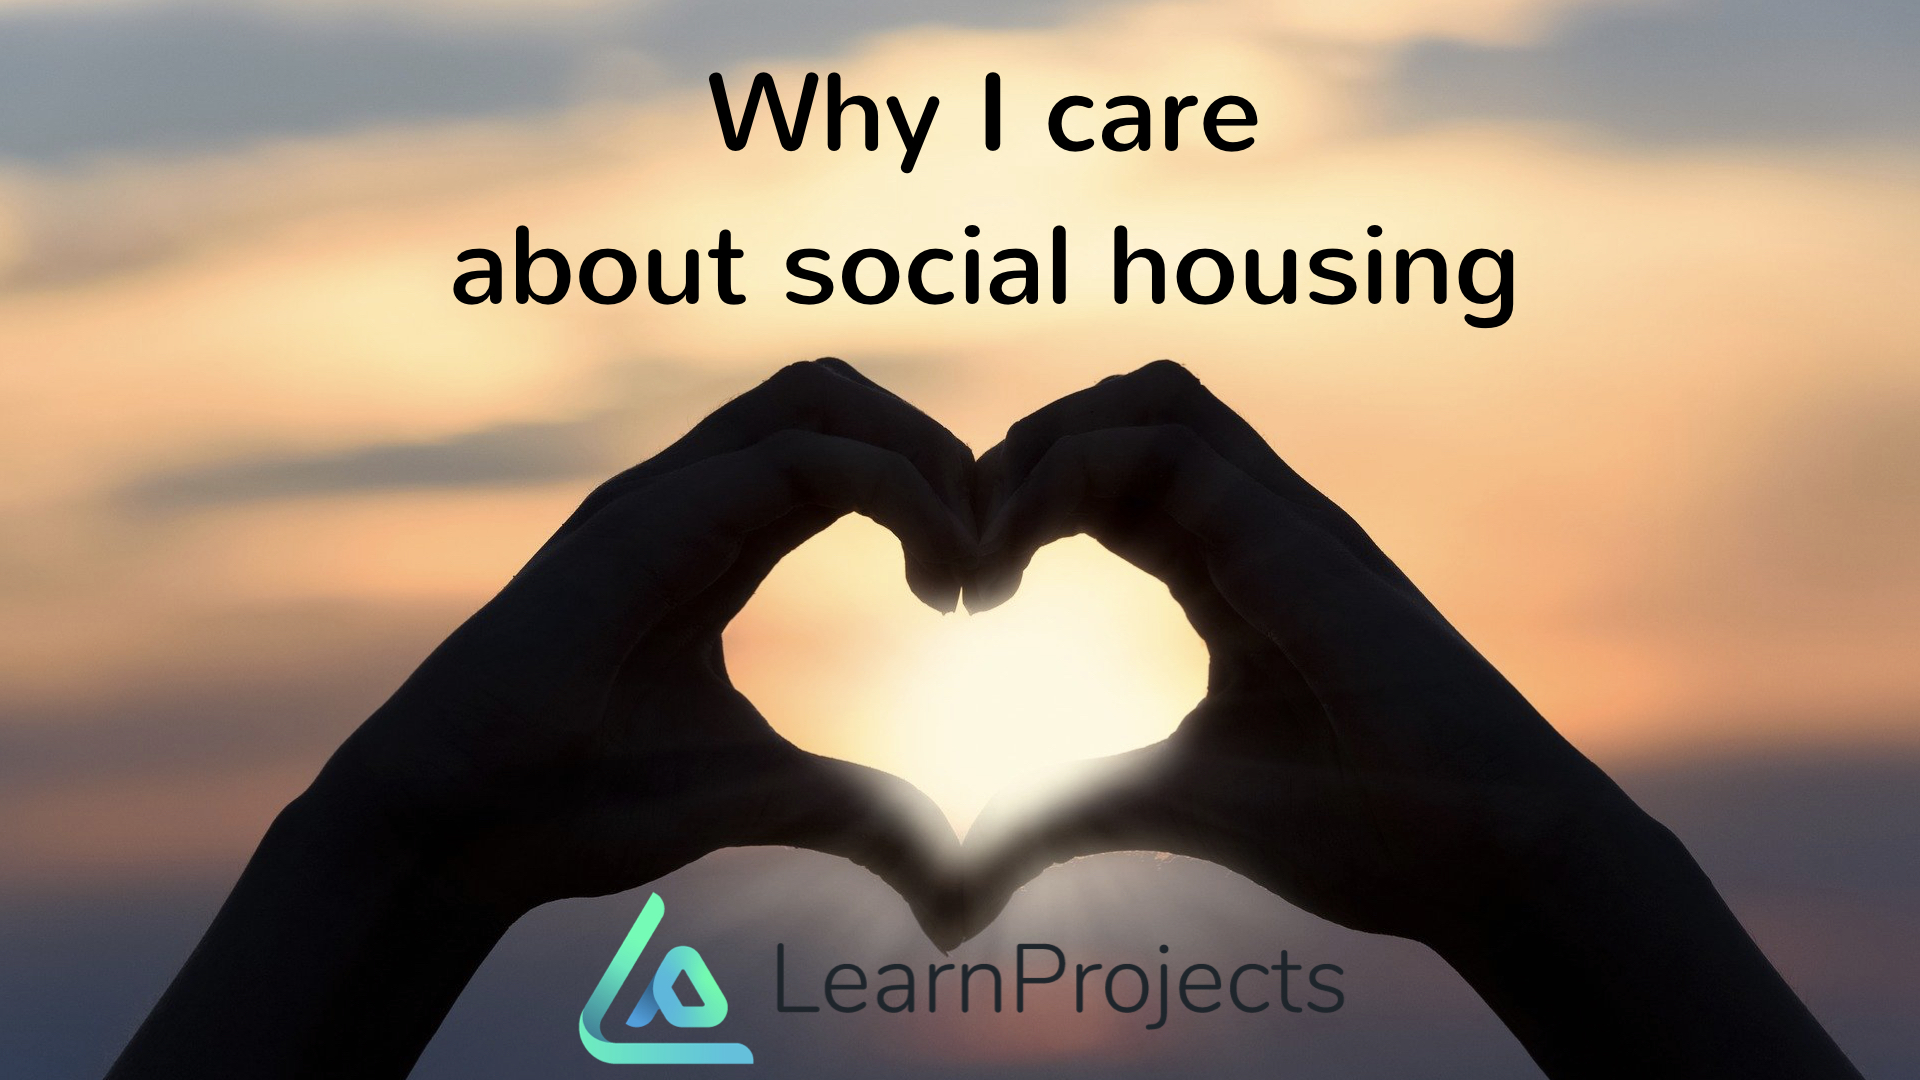 Why I care about social housing